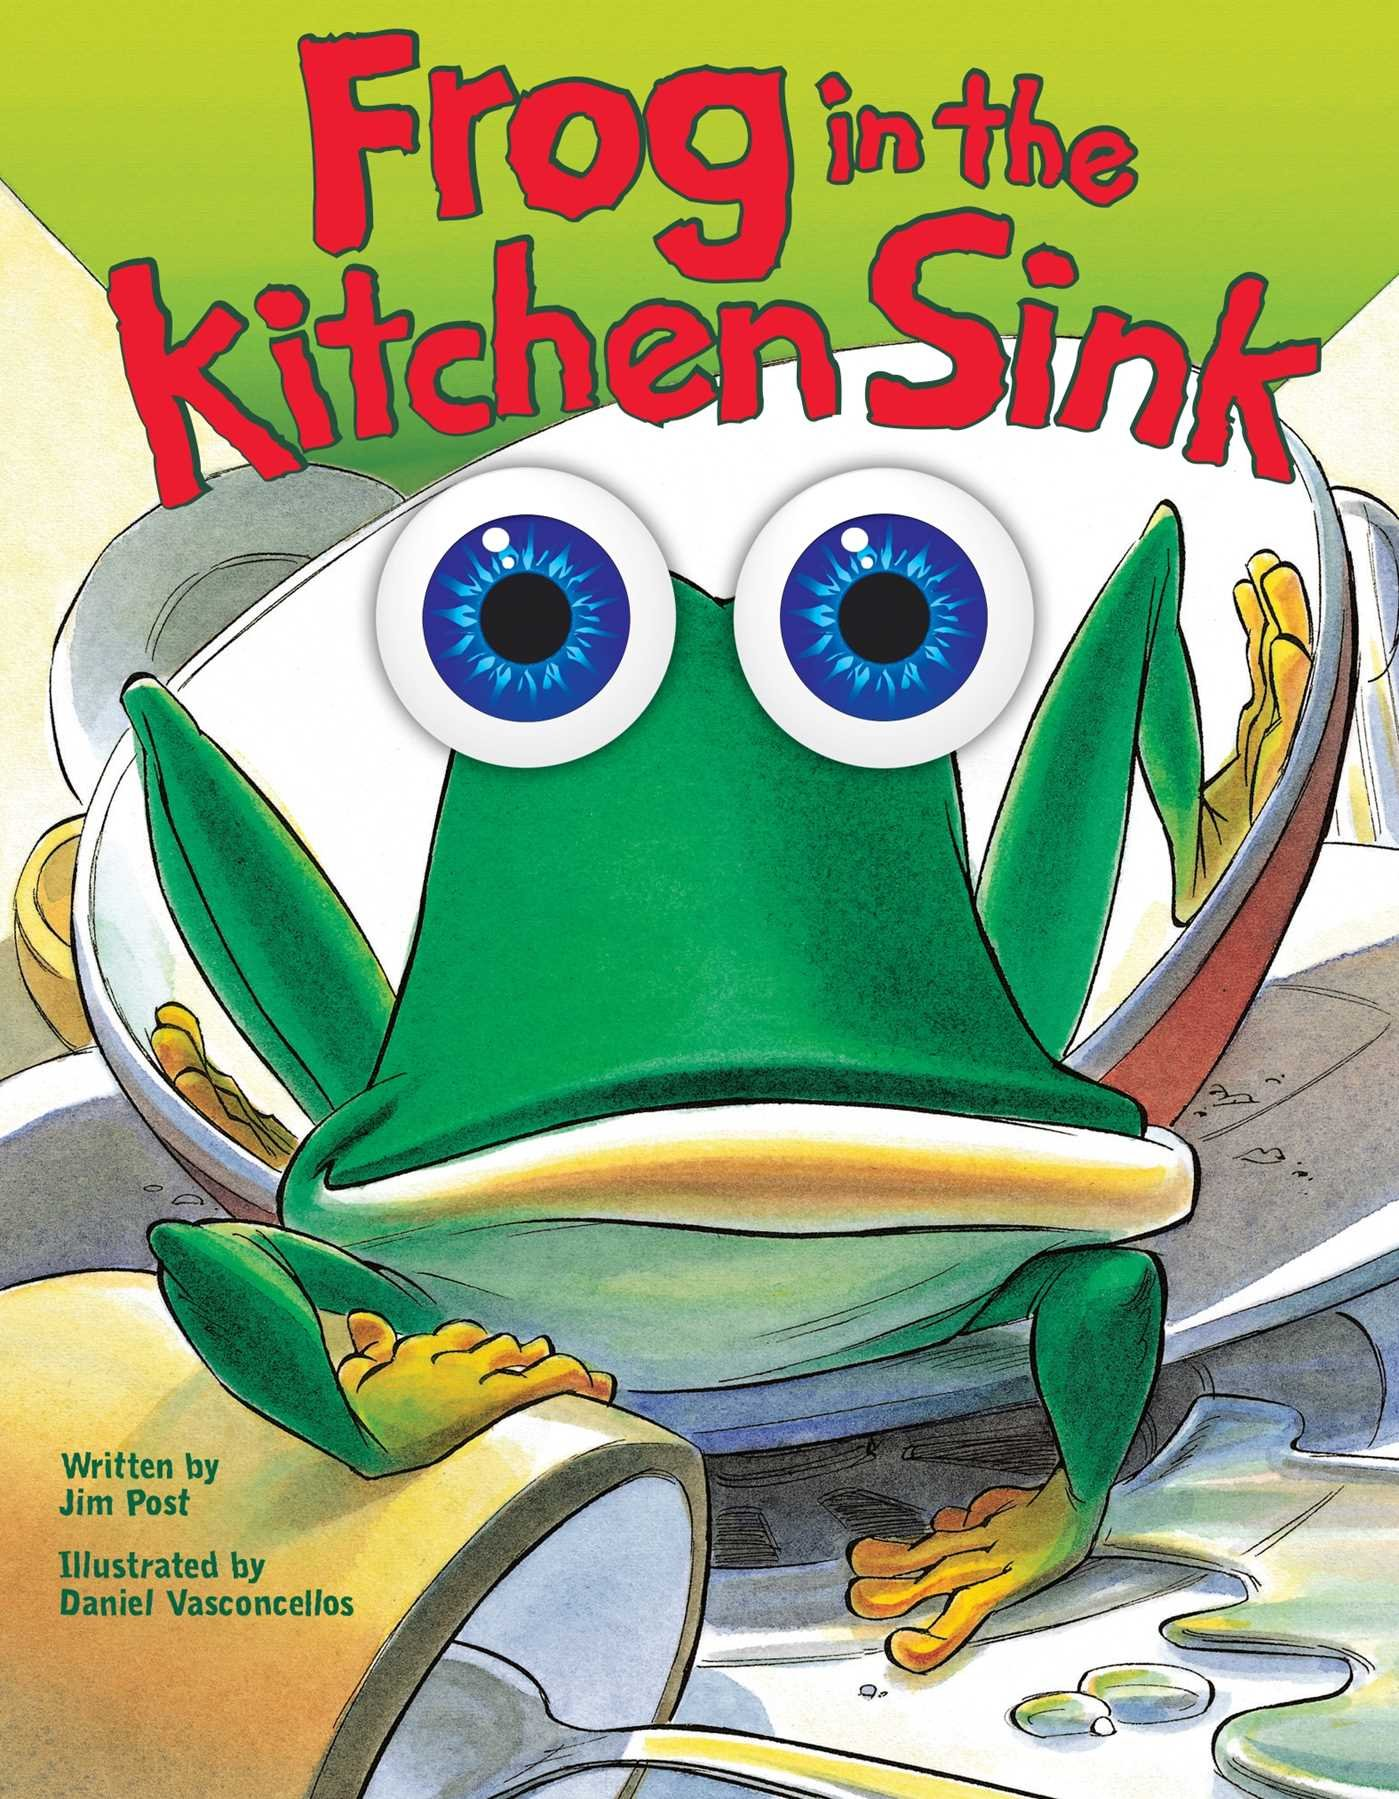 delightful Frog In The Kitchen Sink Song #1: Frog in the Kitchen Sink: Jim Post, Daniel Vasconcellos: 0050837343986:  Amazon.com: Books